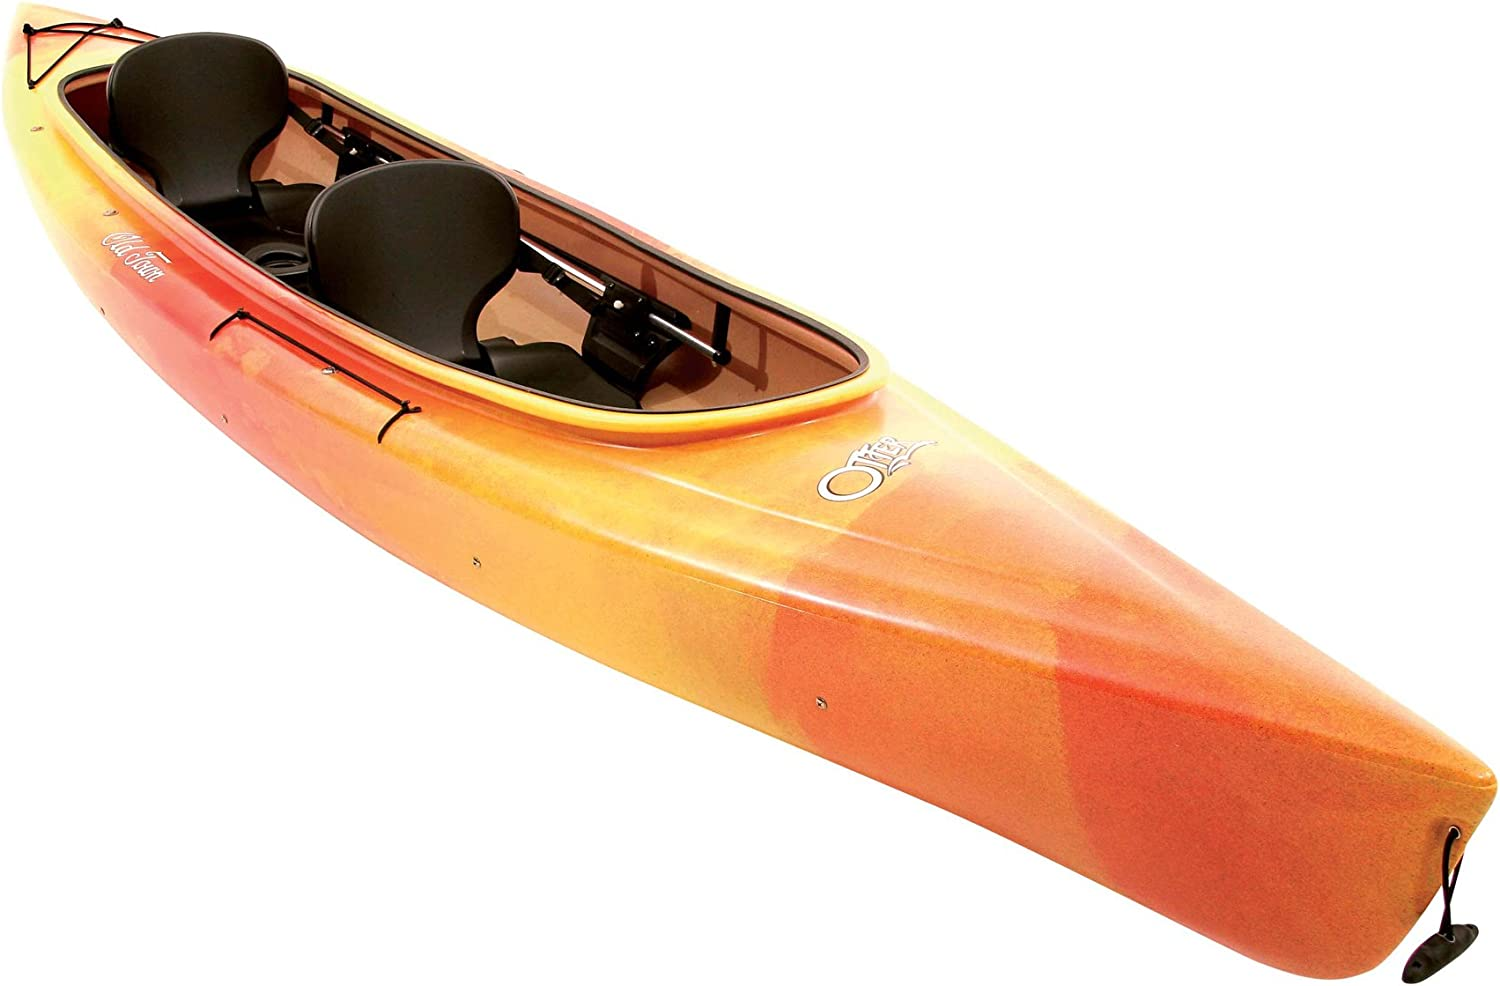 Amazon.com: Old Town 14-feet individual Otter Tandem Kayak ...